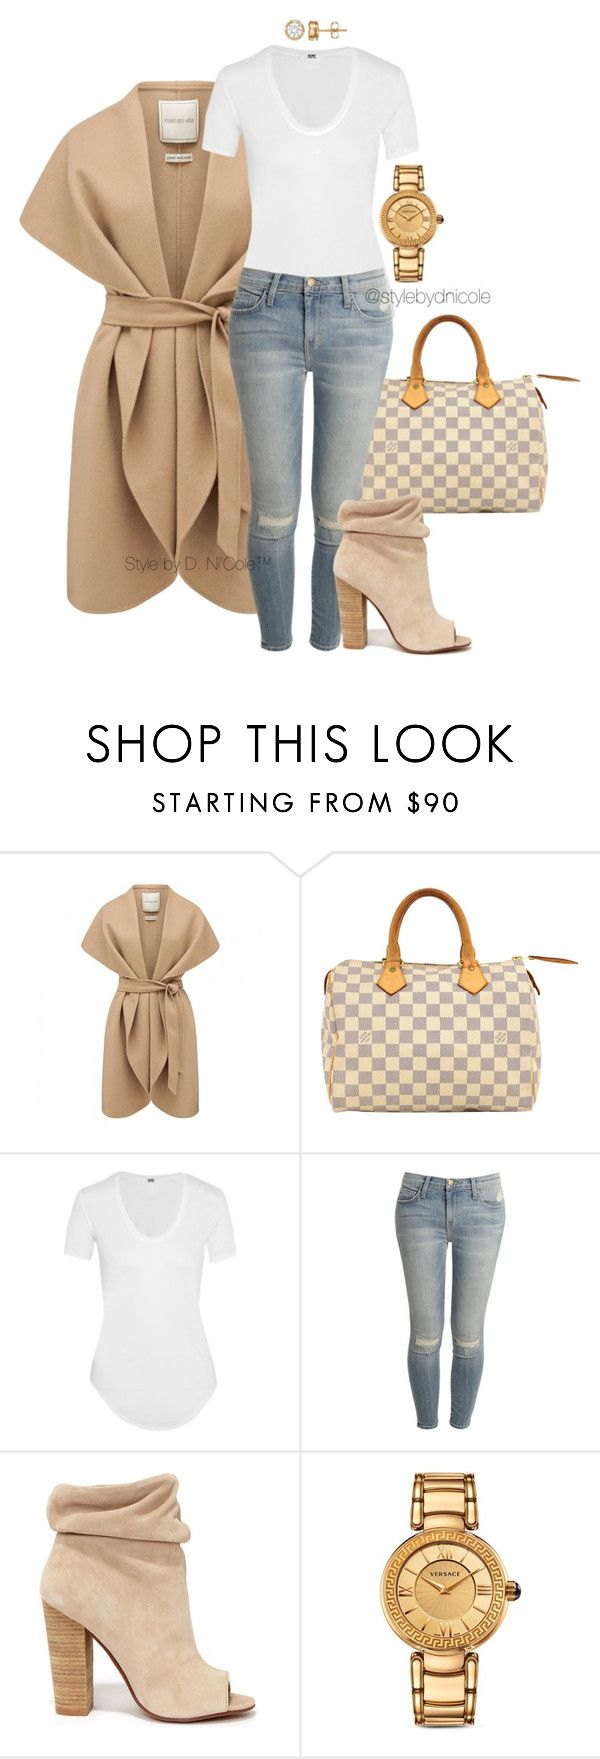 """""""Untitled #3226"""" by stylebydnicole ❤ liked on Polyvore featuring Forever New, Louis Vuitton, Helmut Lang, Current/Elliott, Kristin Cavallari and Versace"""